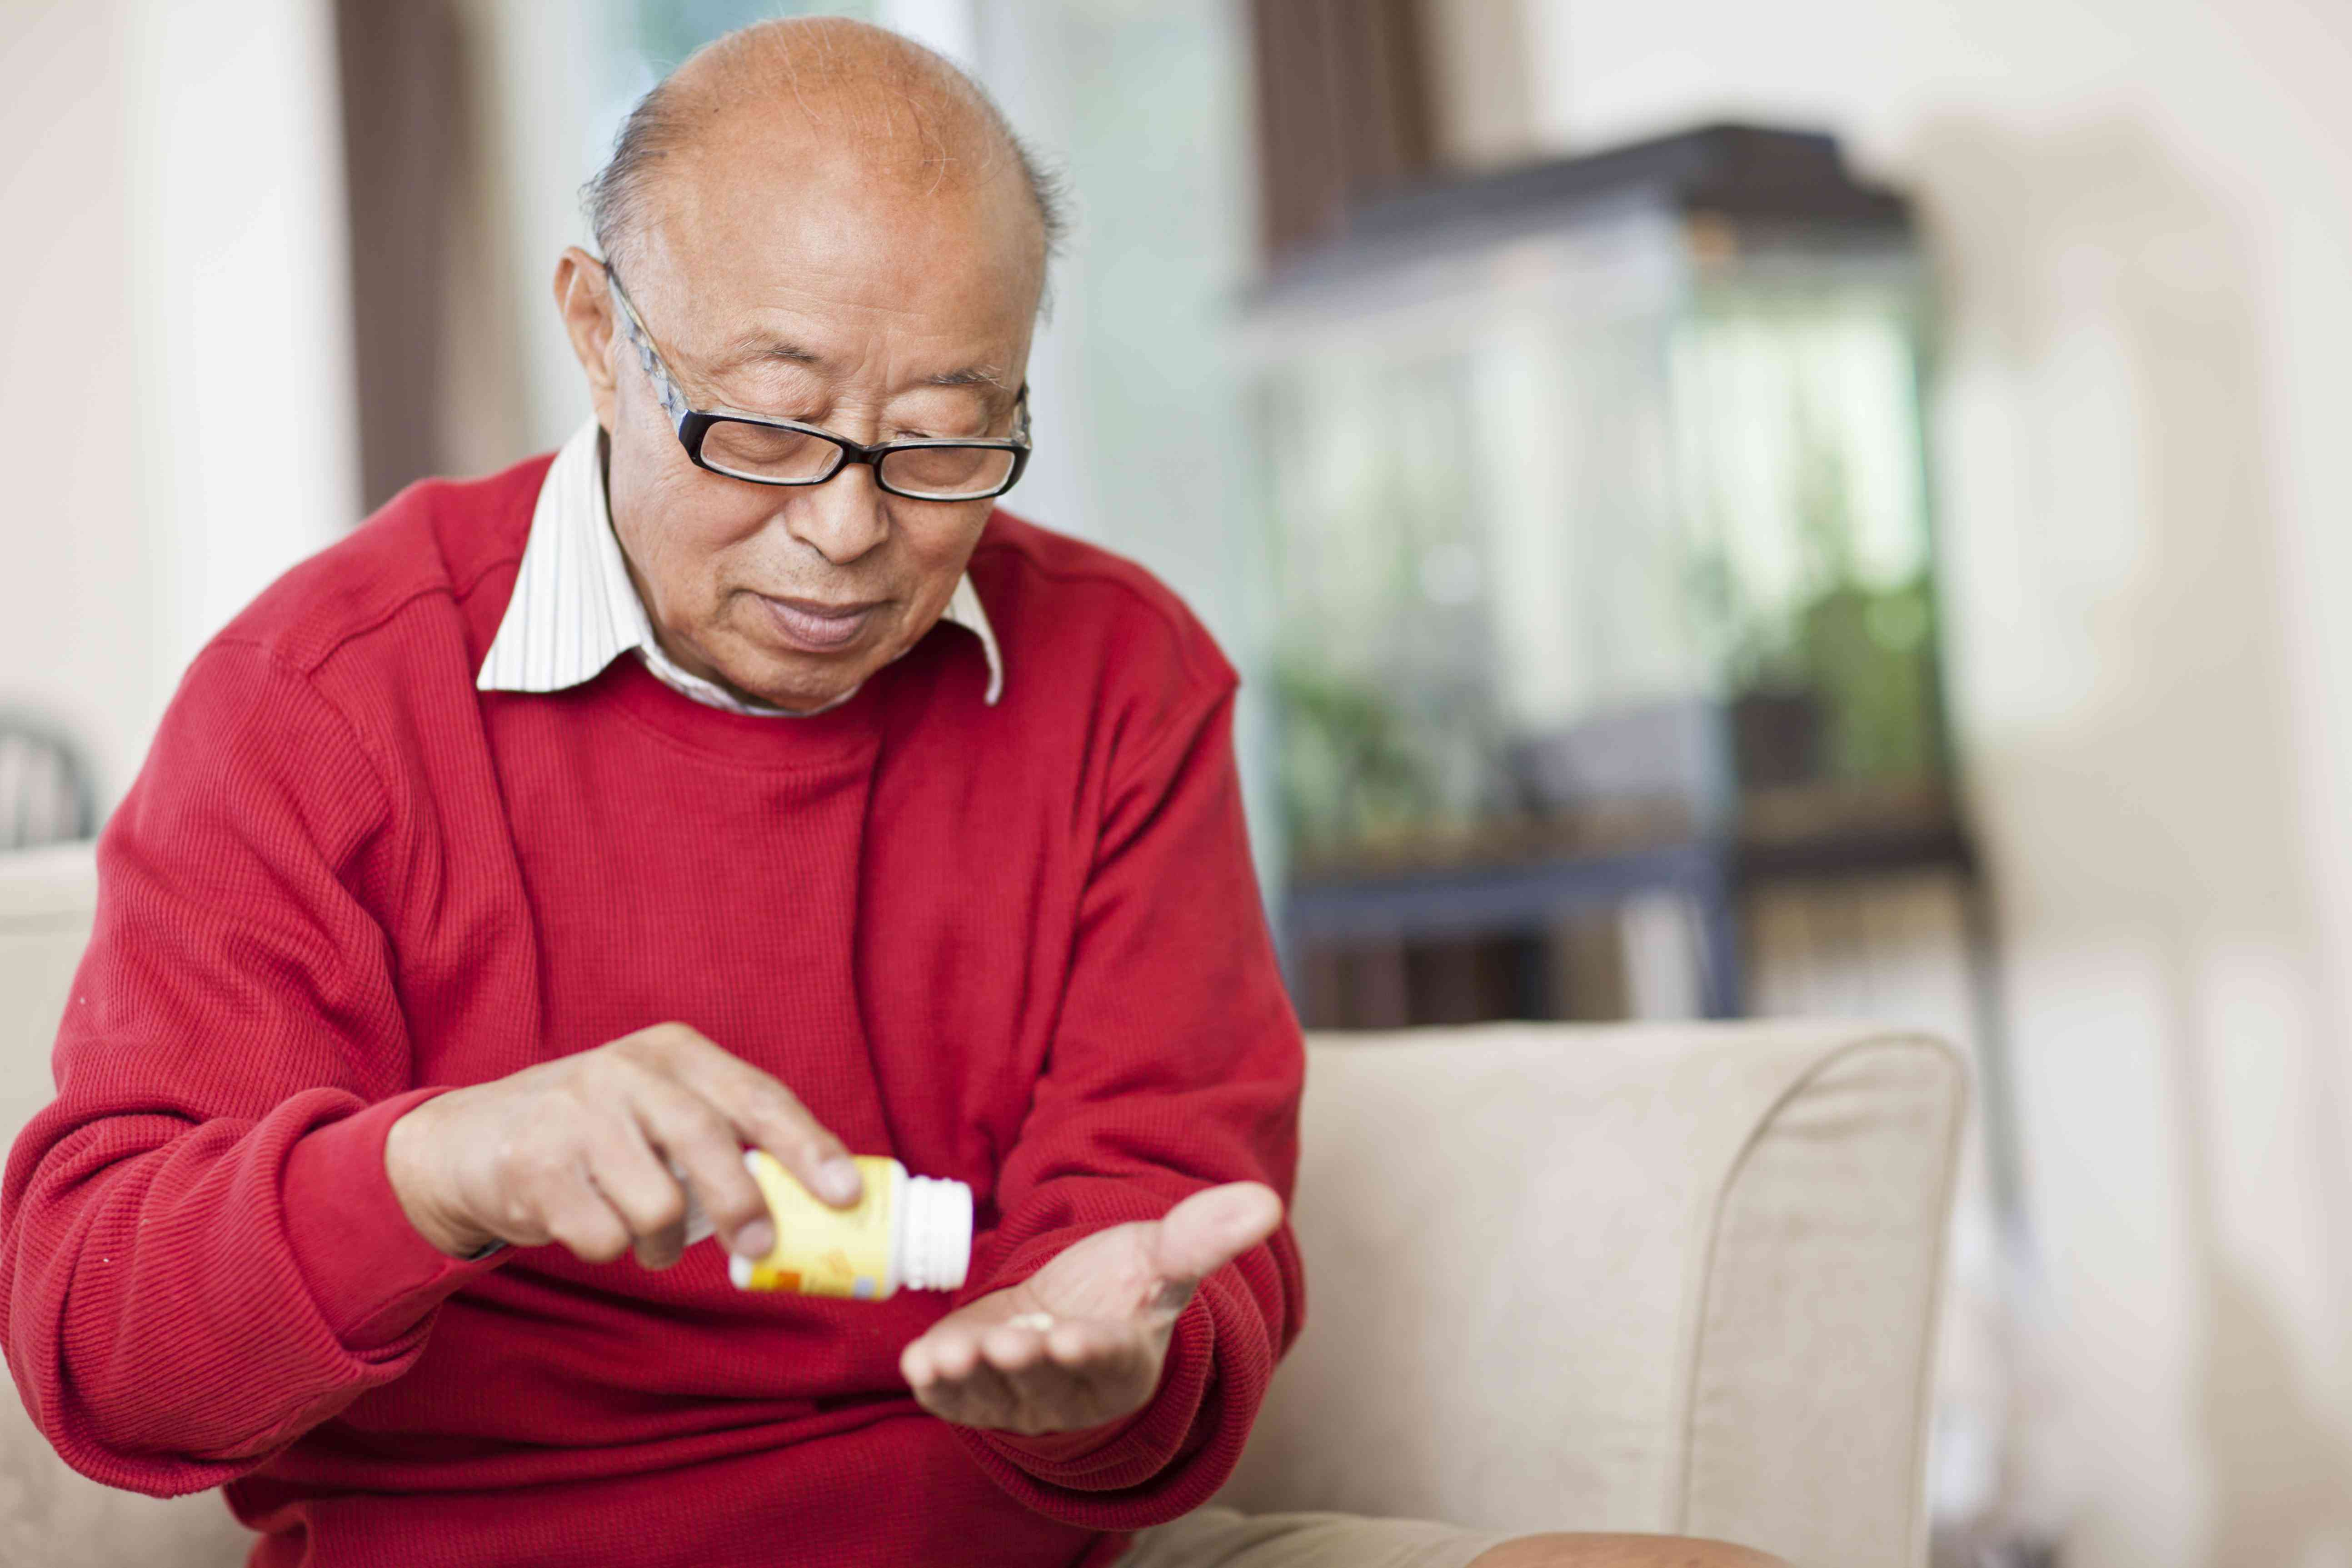 Man sitting on couch taking medication